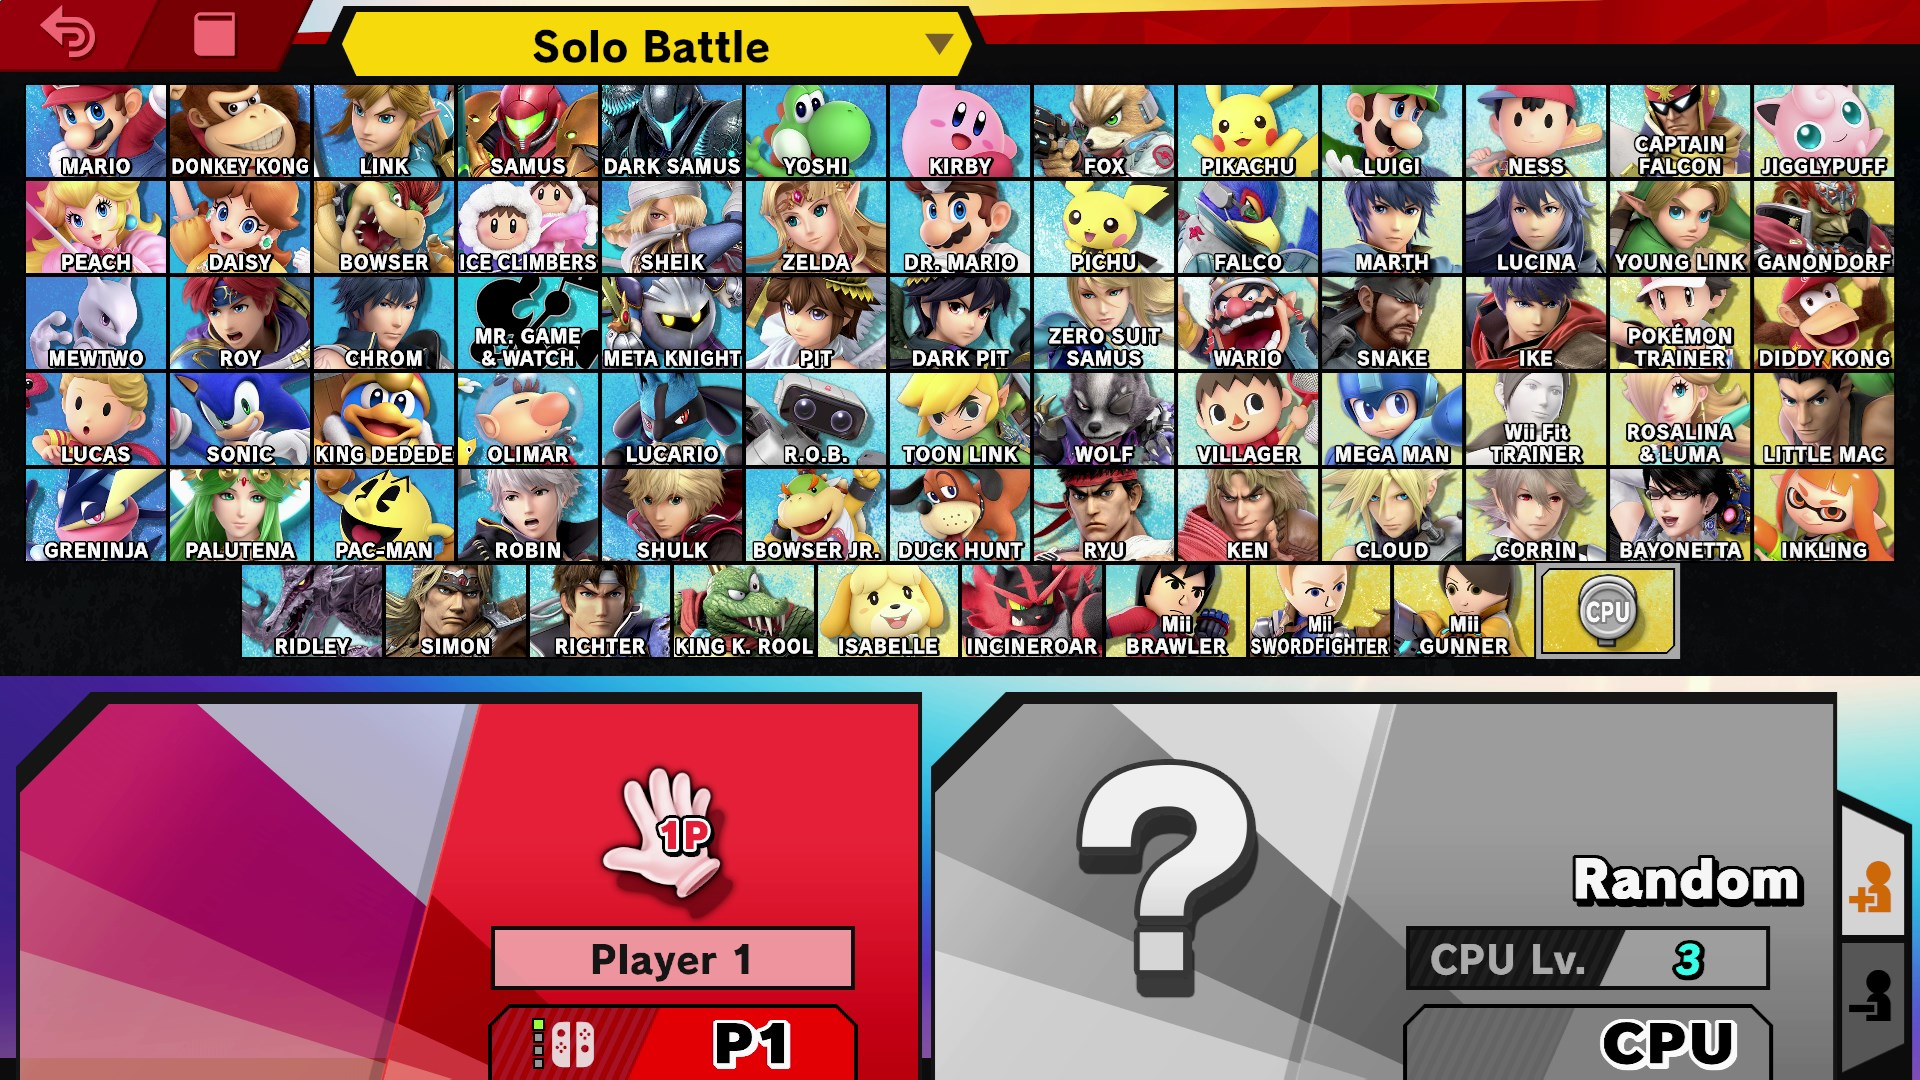 Smash Bros. And Leaked Information: A Lesson The Community Learned